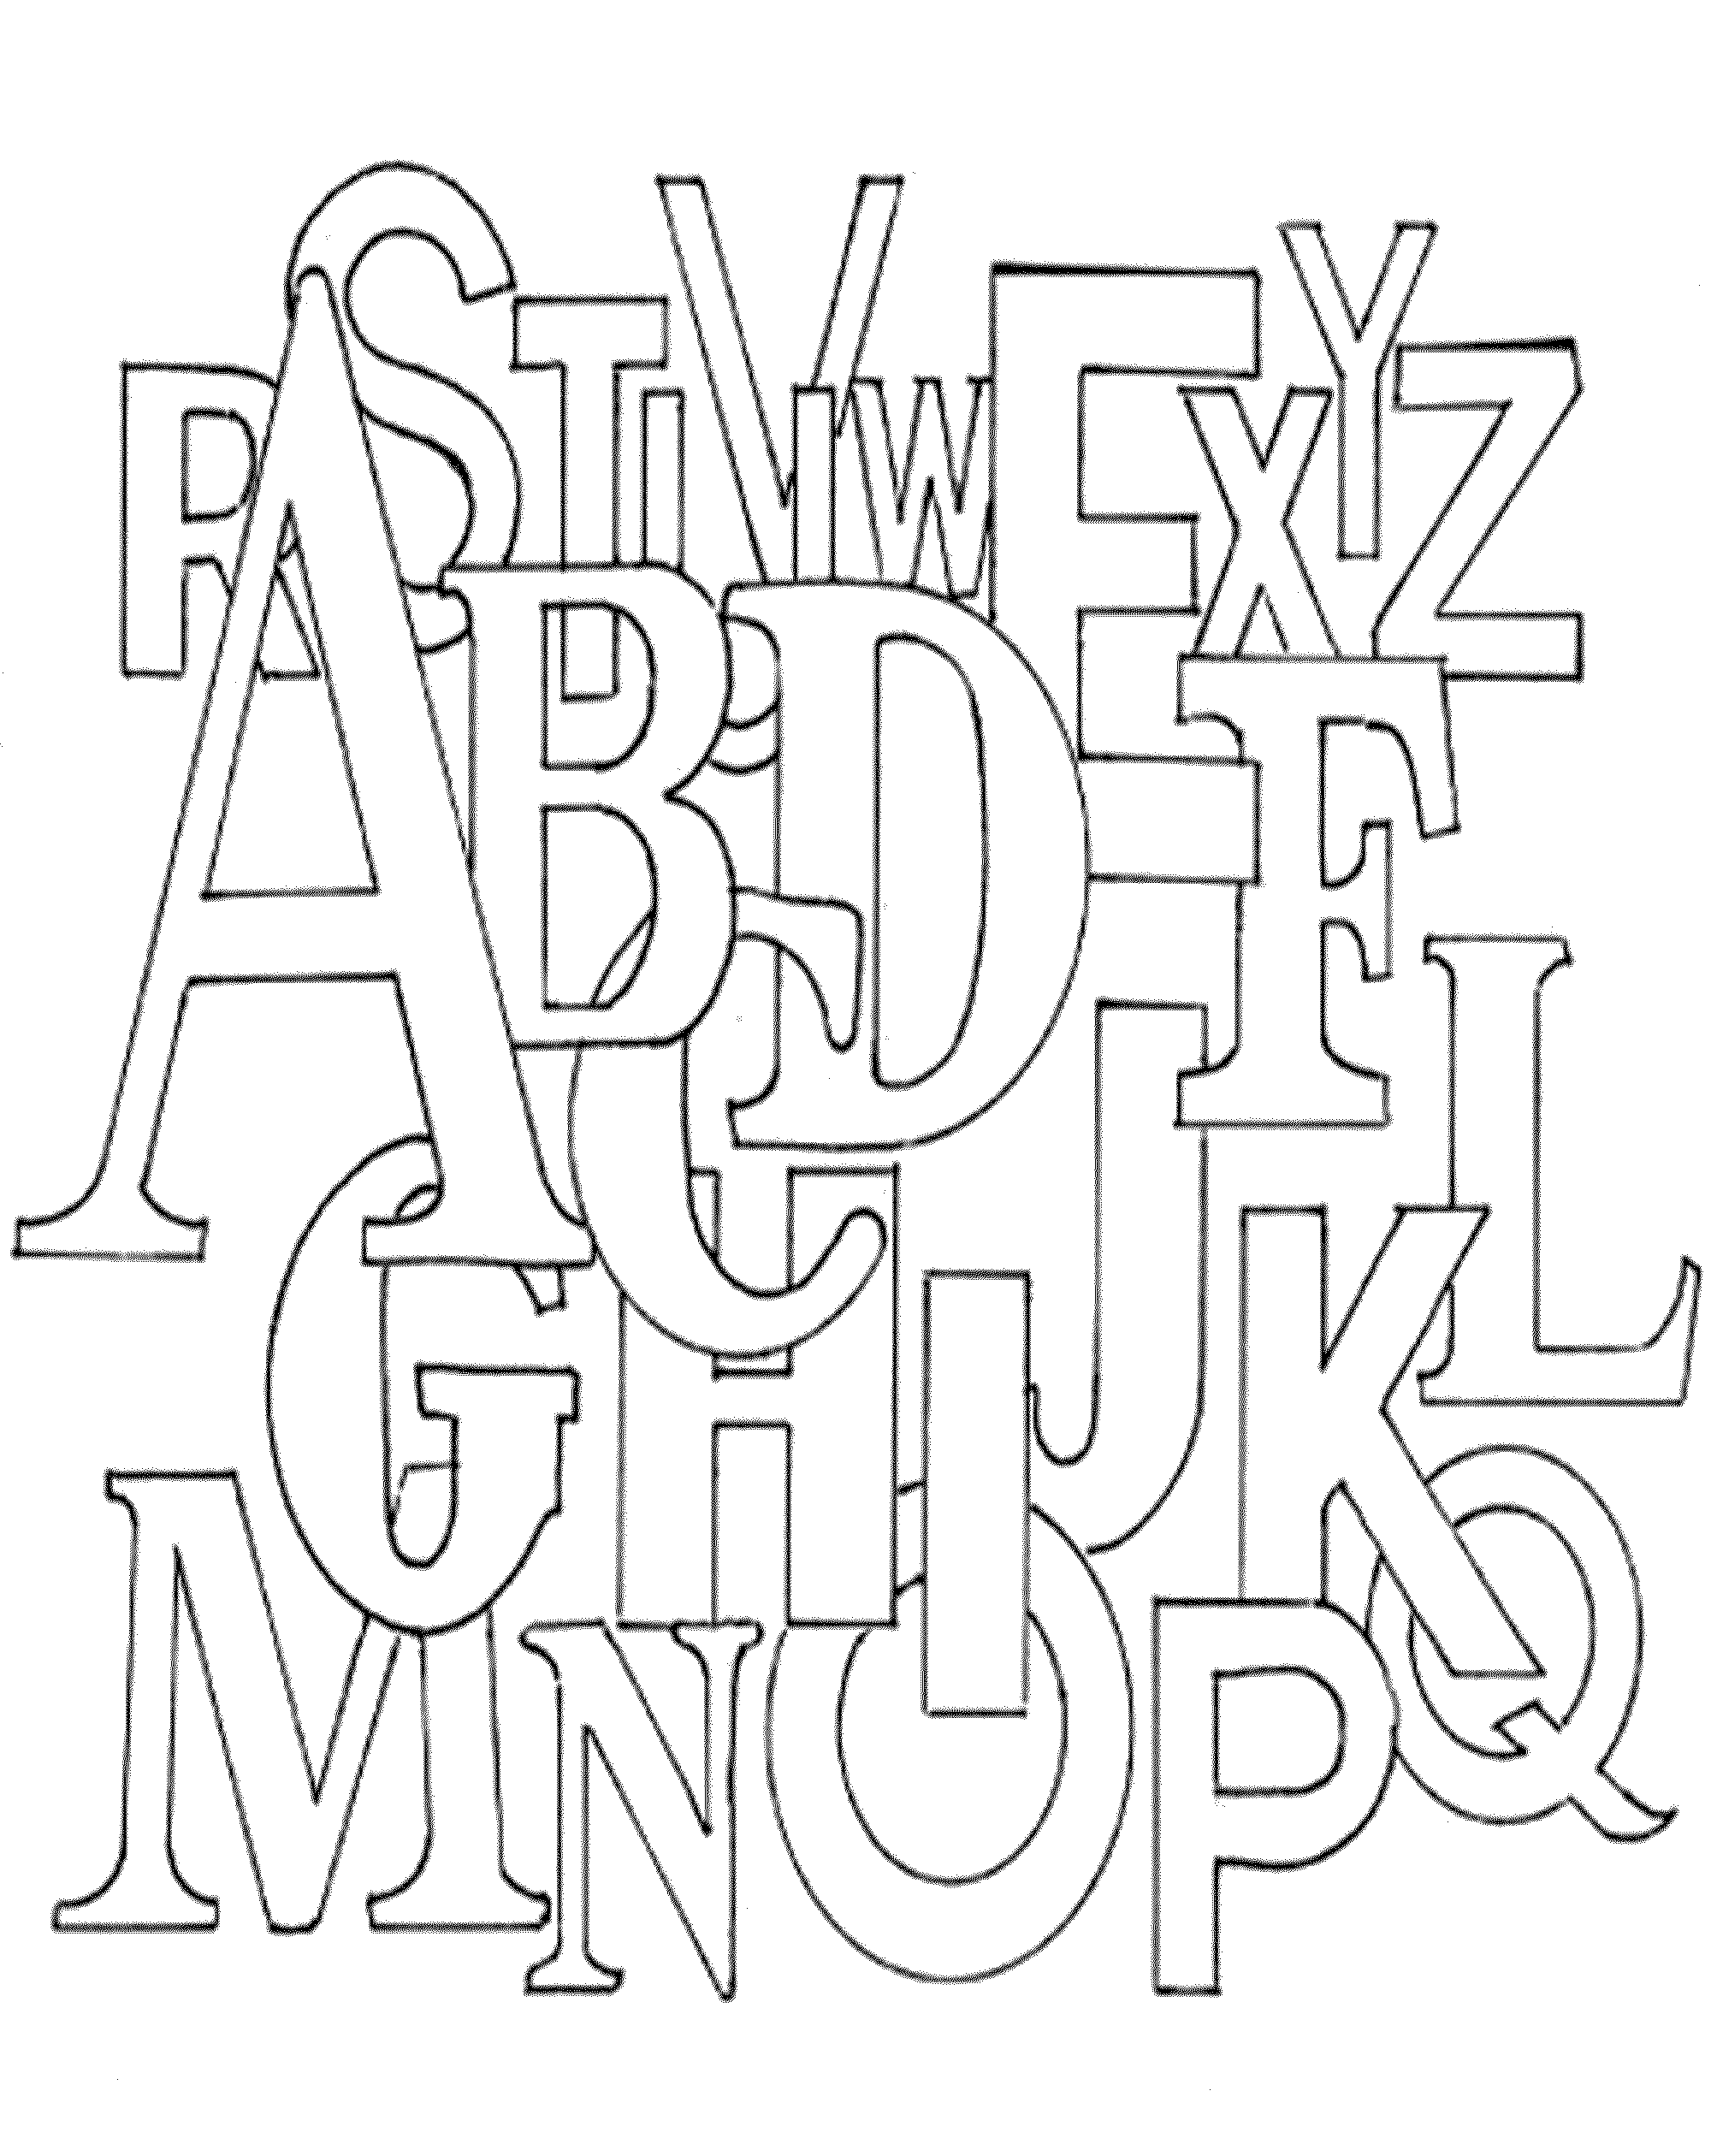 alphabet coloring book printable 78 alphabet coloring pages uppercase and lowercase coloring book printable alphabet